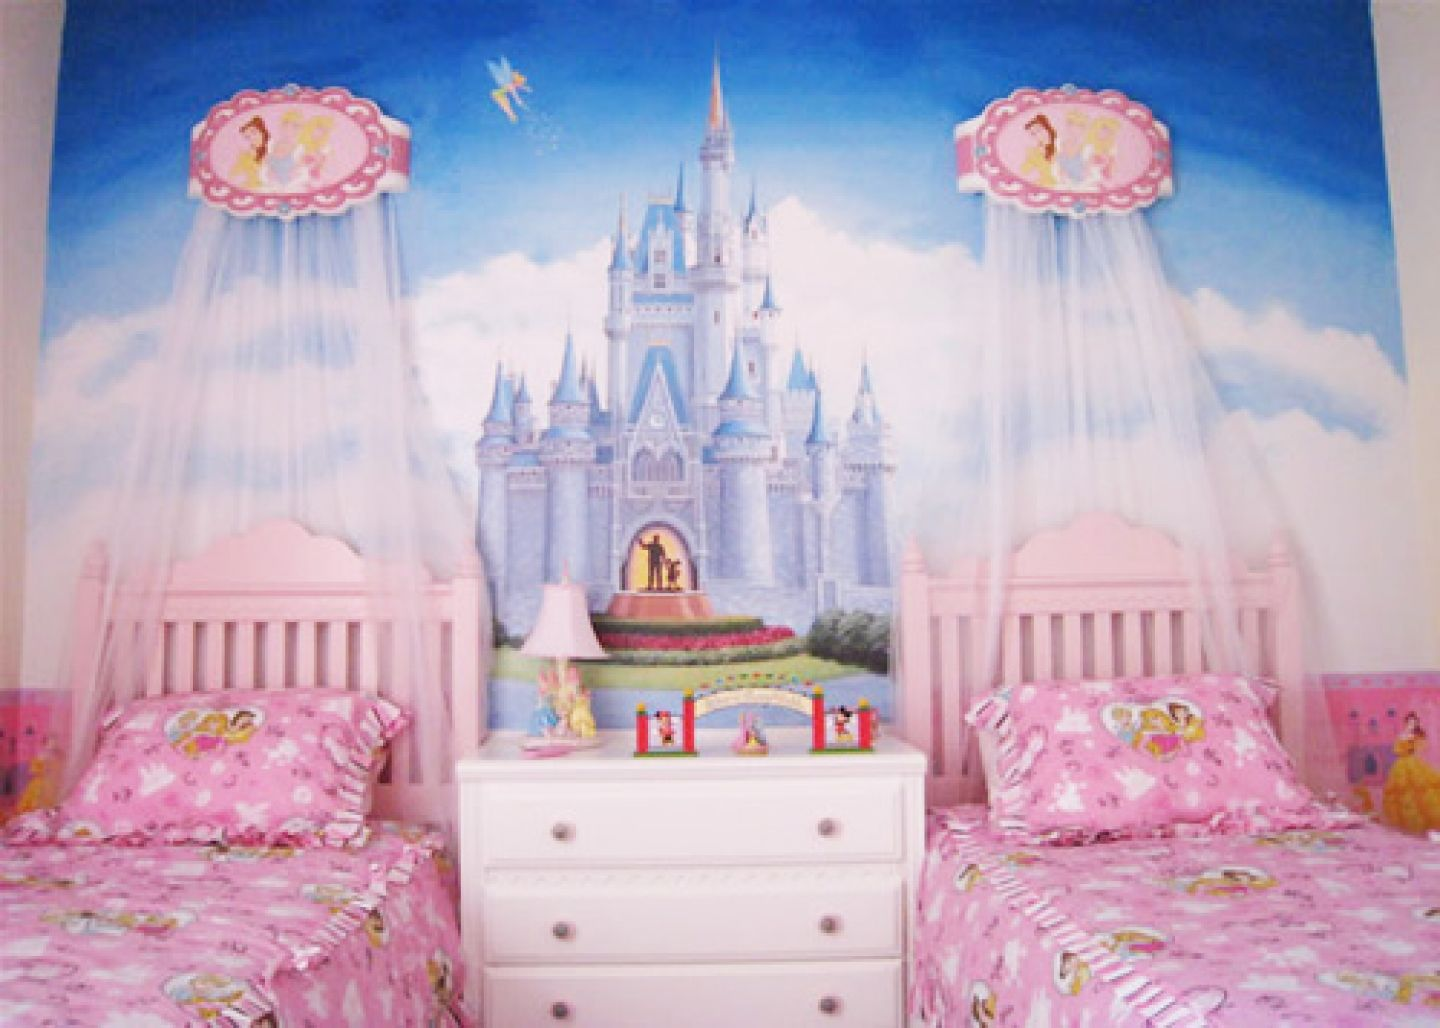 toddler bedroom ideas | bedroom bedroom kids decor decorating ...